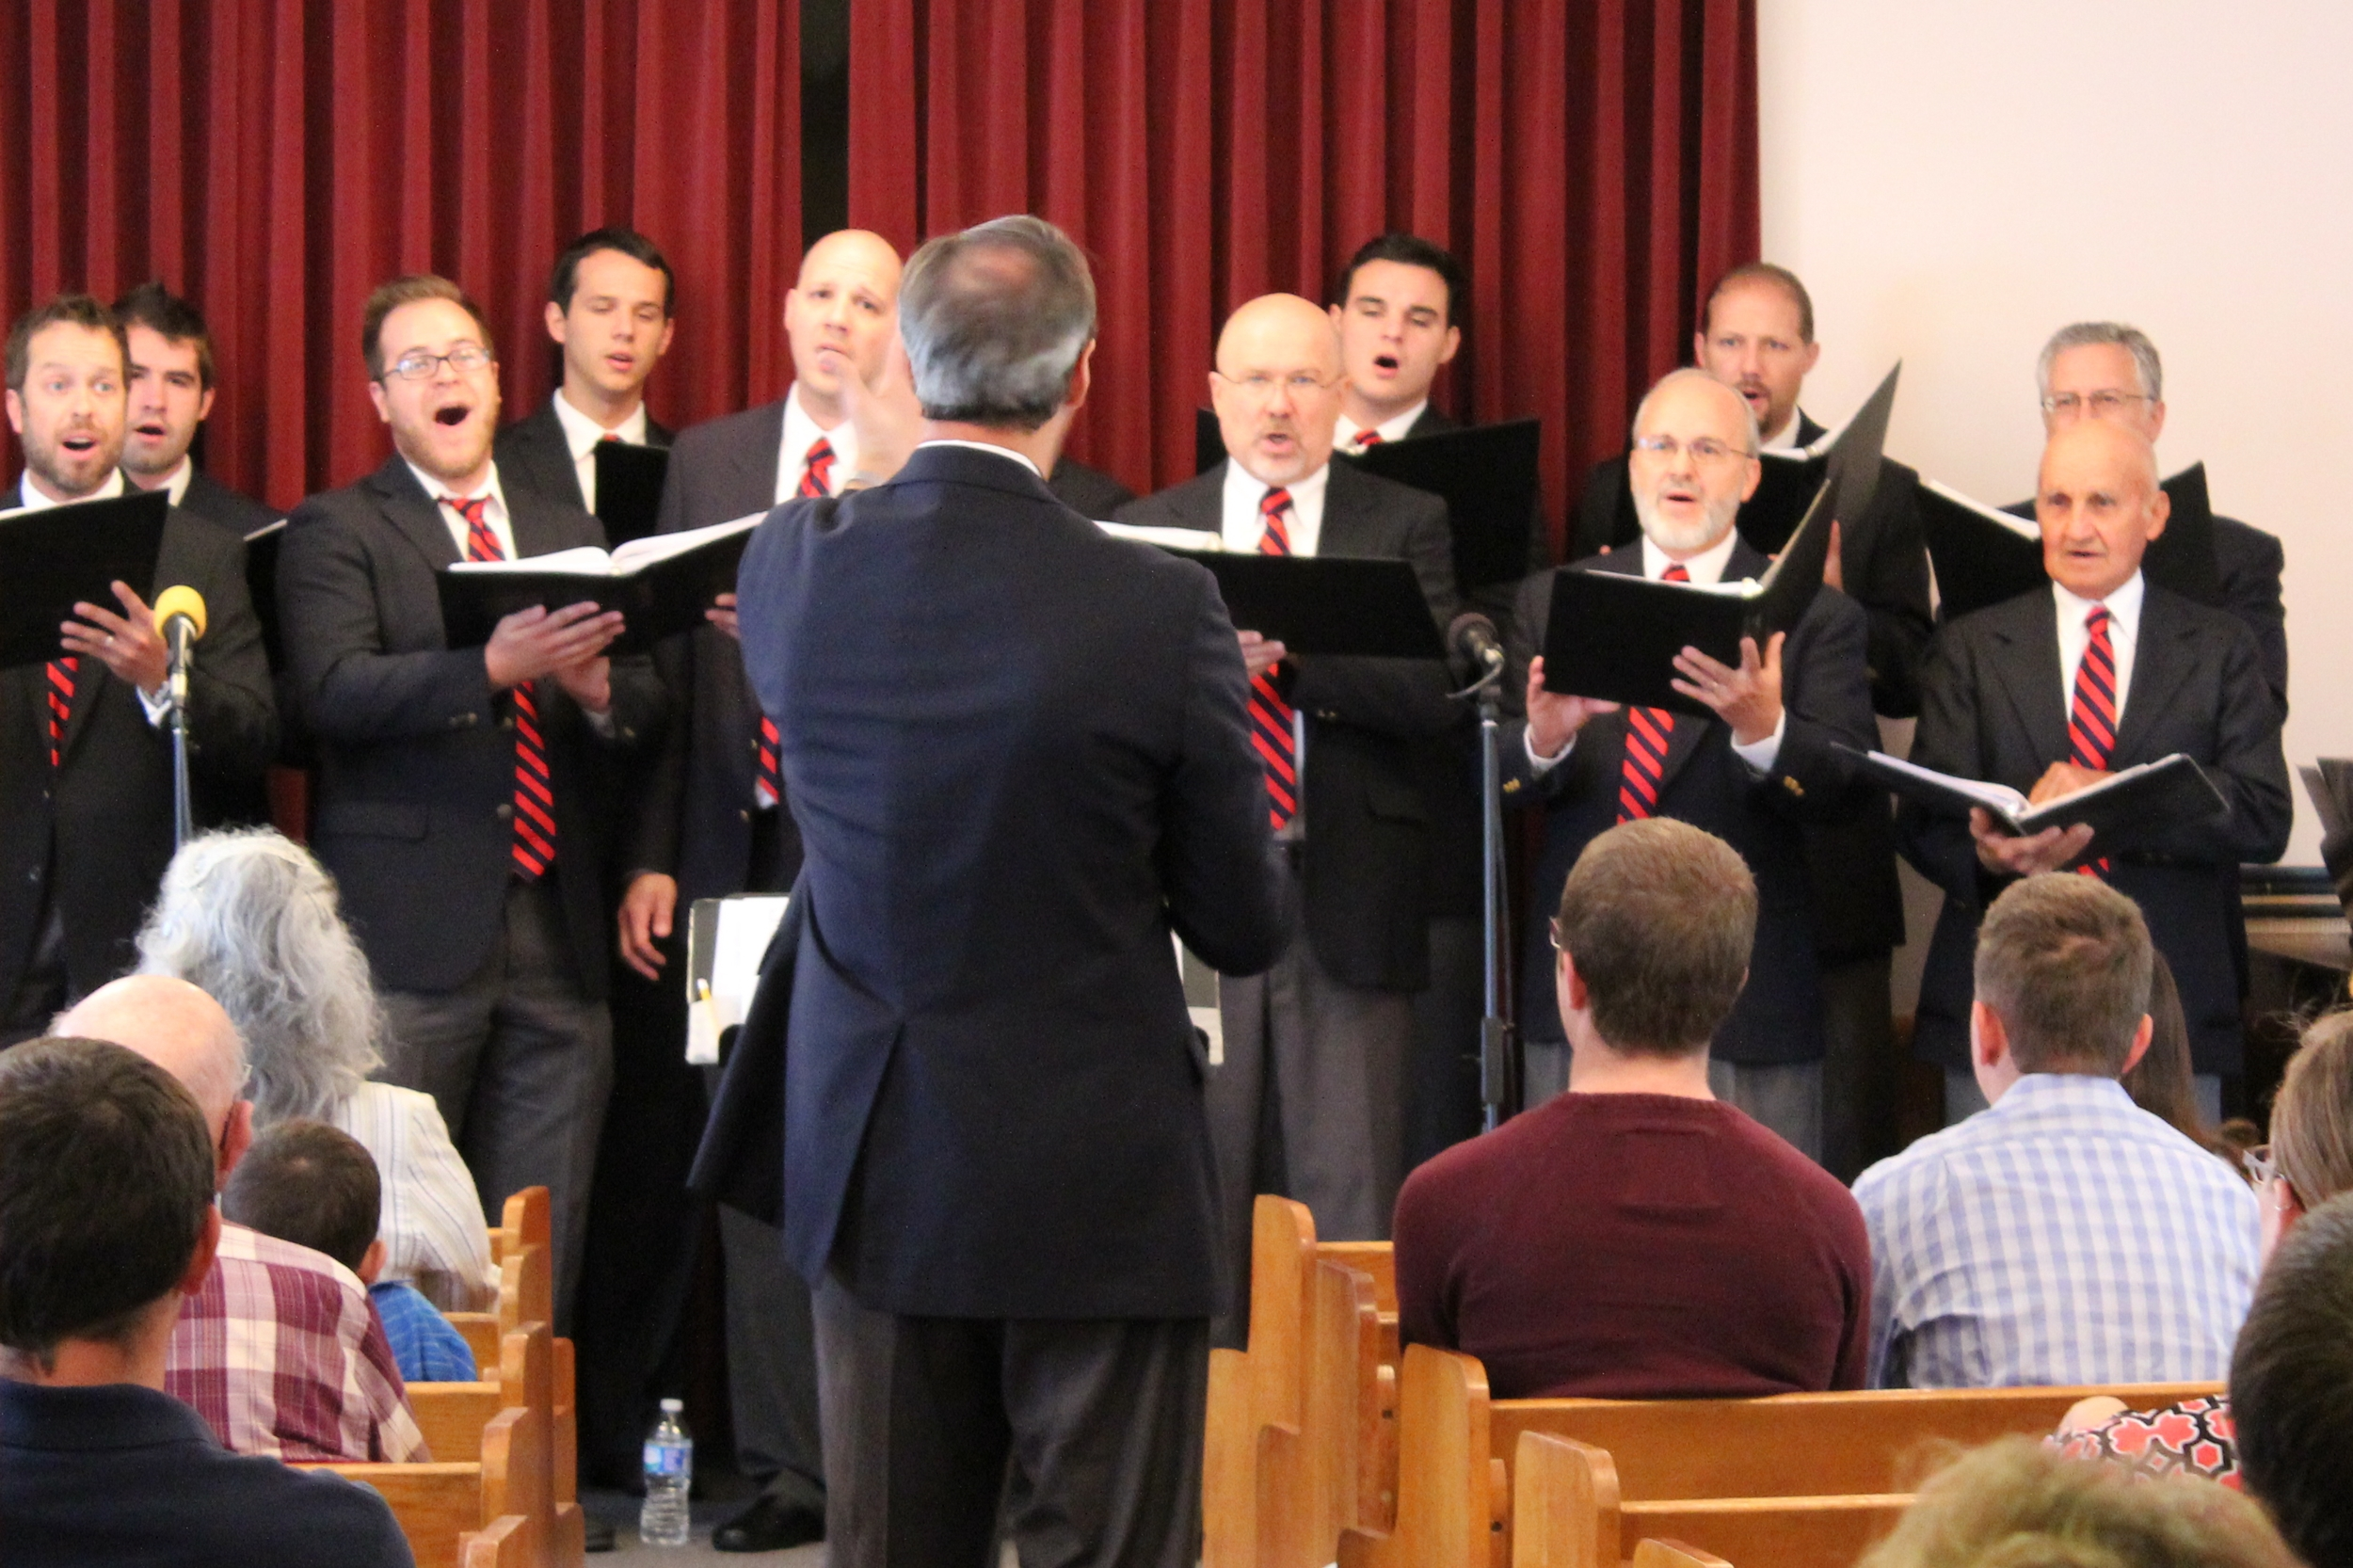 The Christian Choristers sang at Community Bible Church on Sunday, September 14.